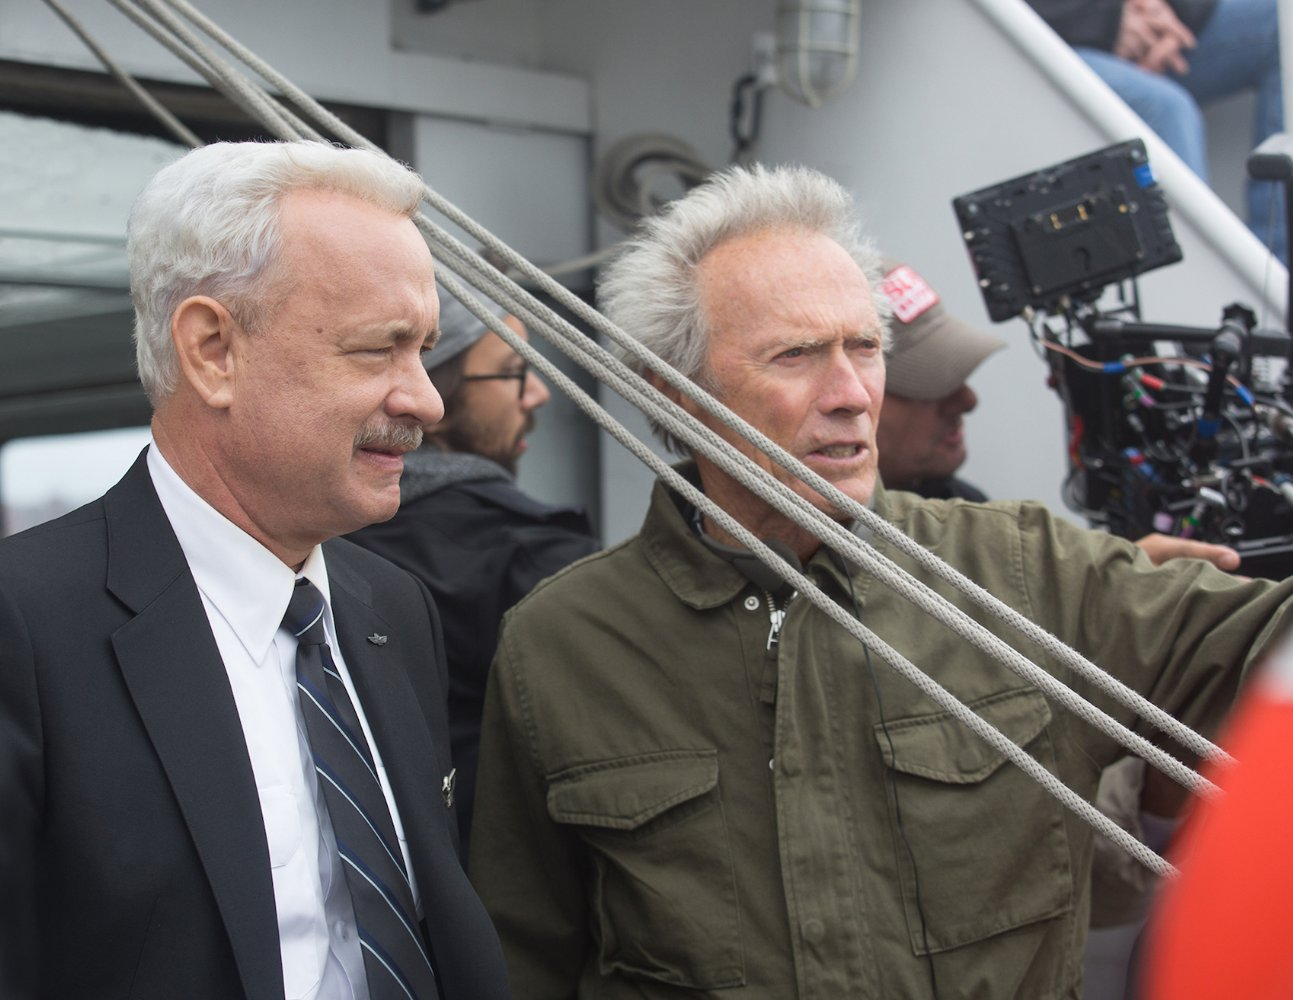 Tom Hanks & Clint Eastwood